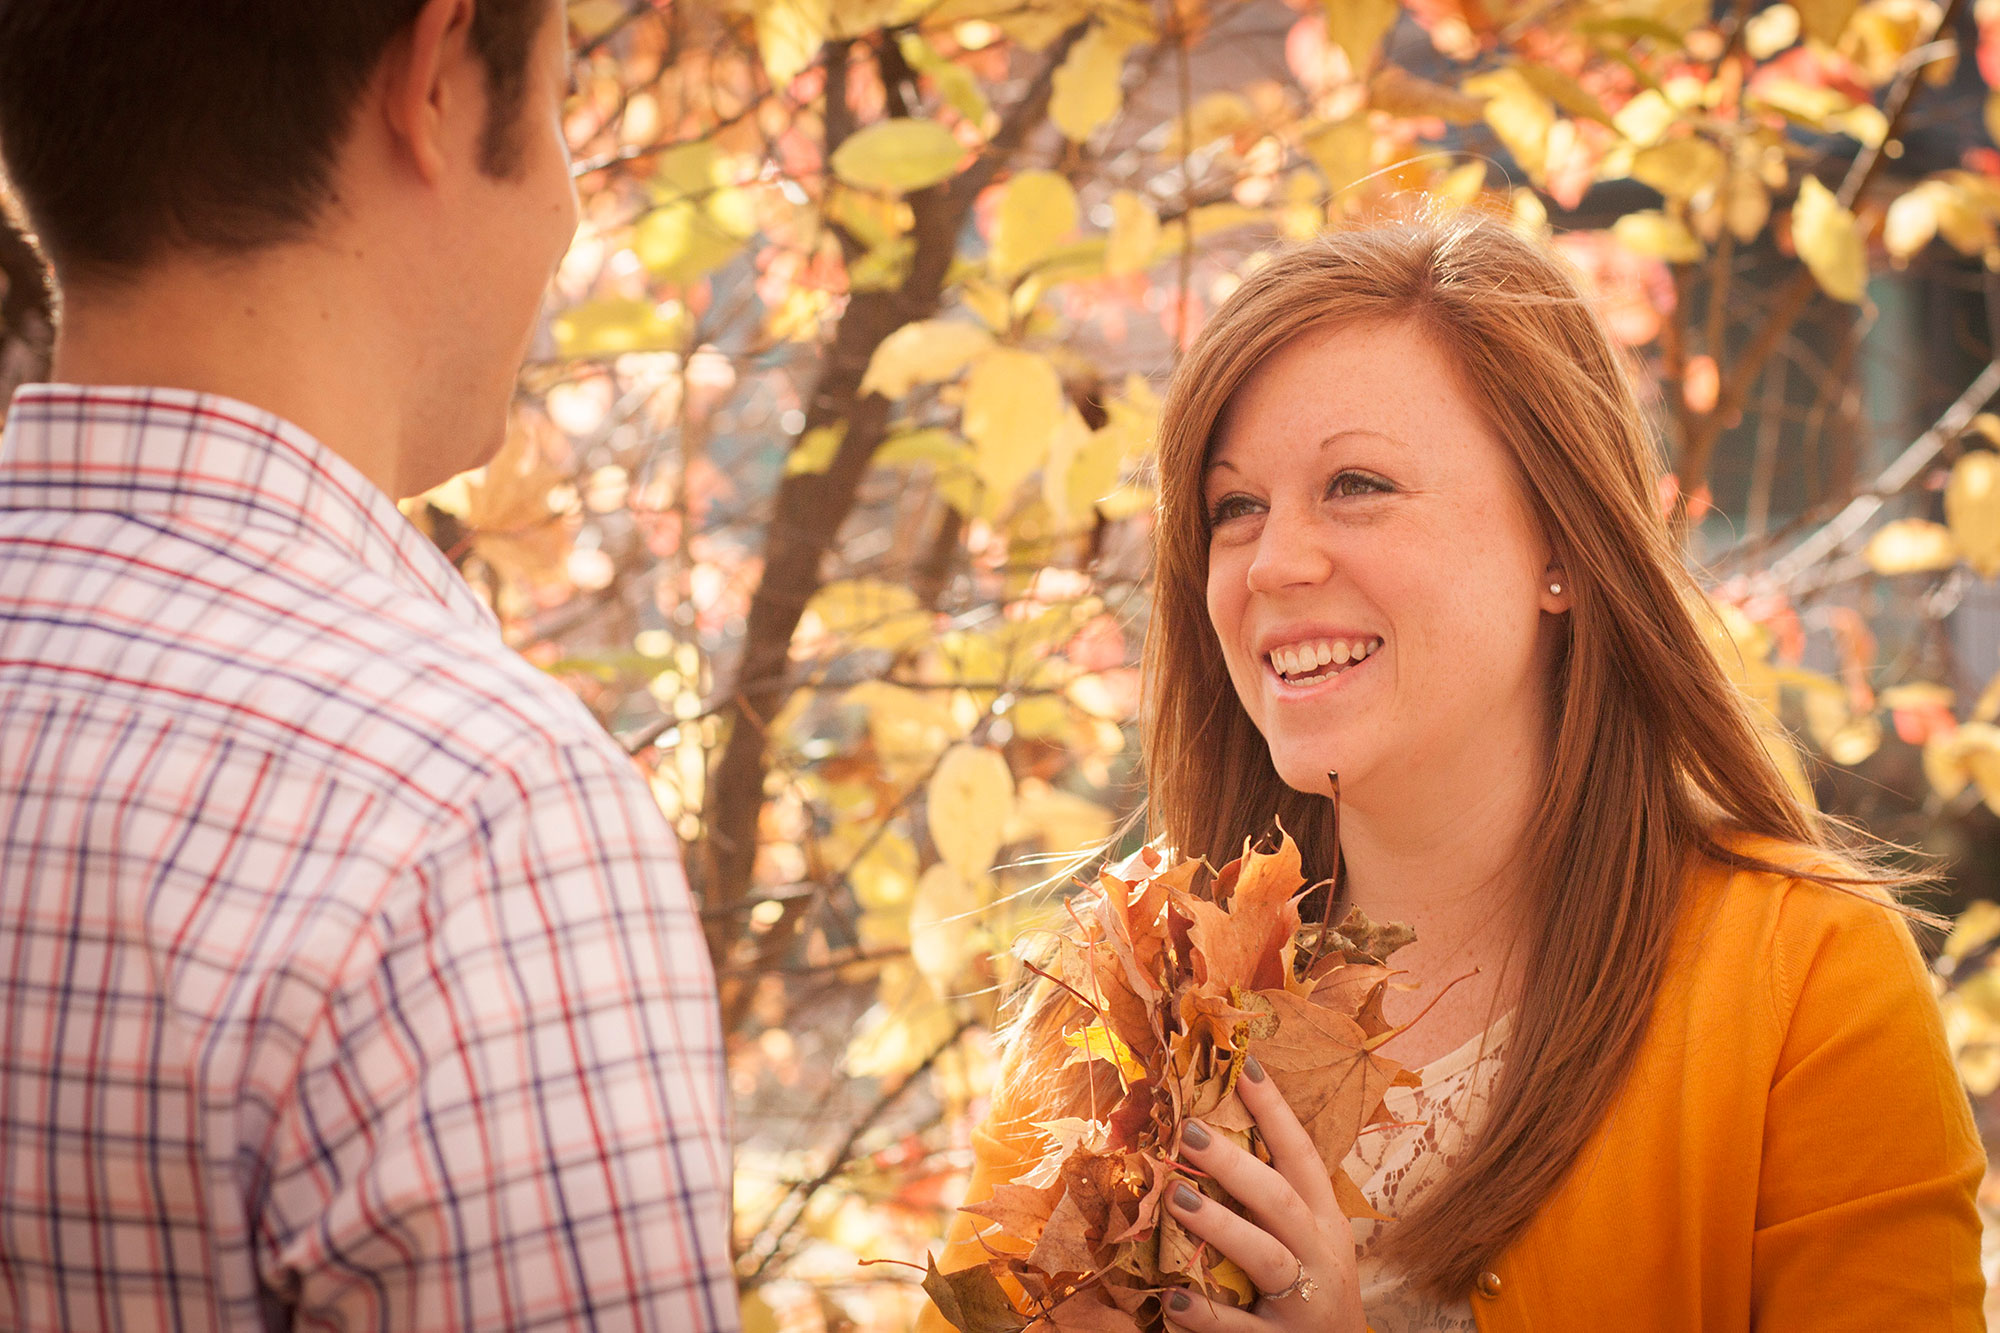 engagement-shoot-4-chris-tyre.jpg